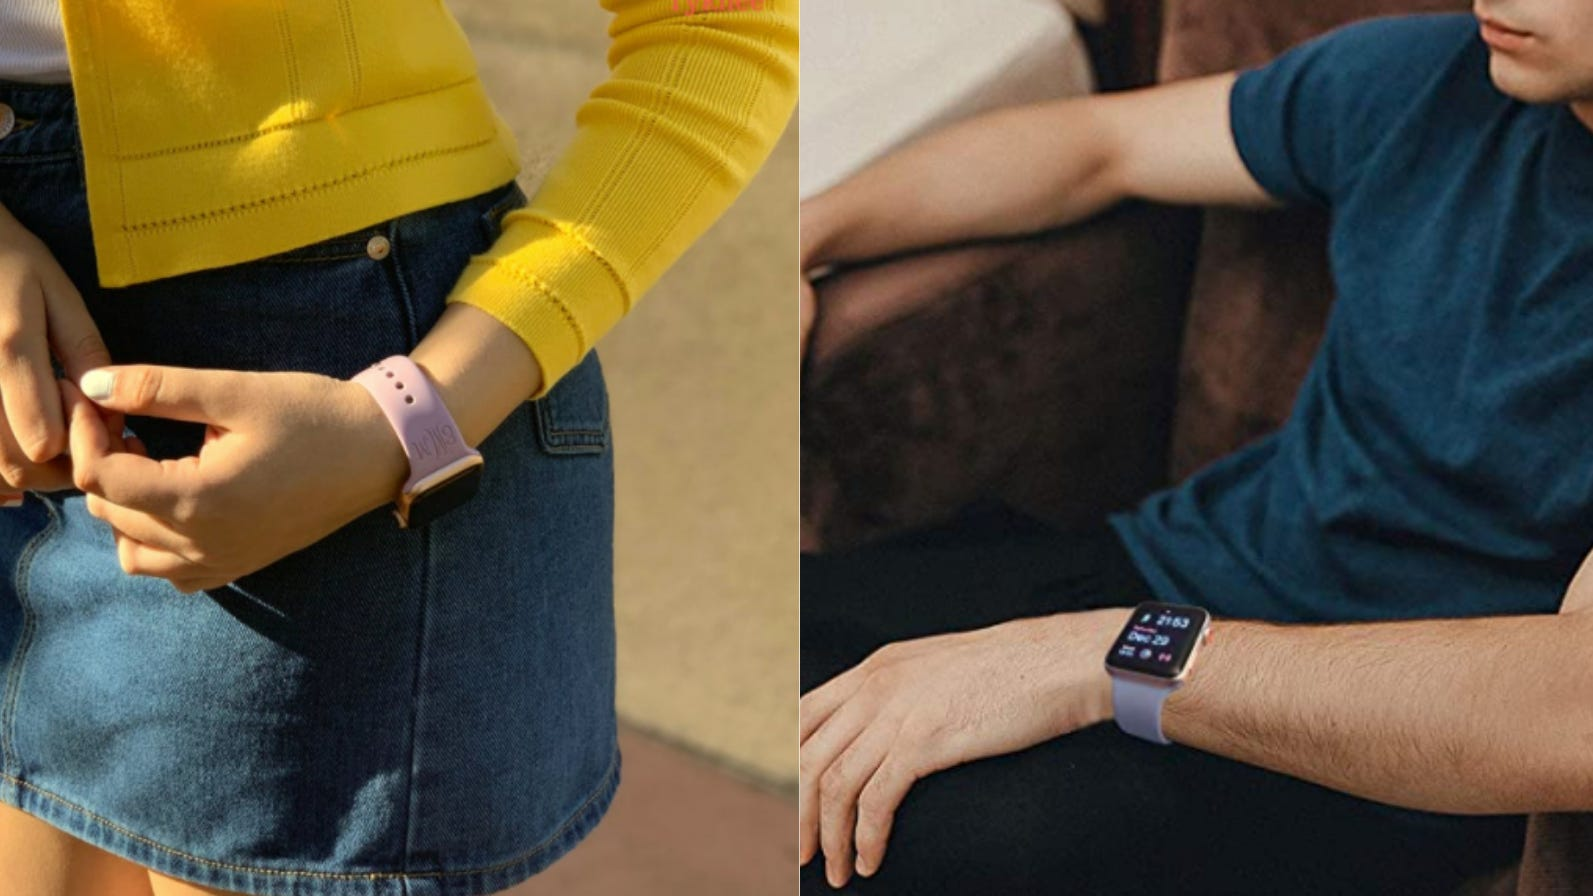 15 Bestselling Bands To Buy For Your Apple Watch